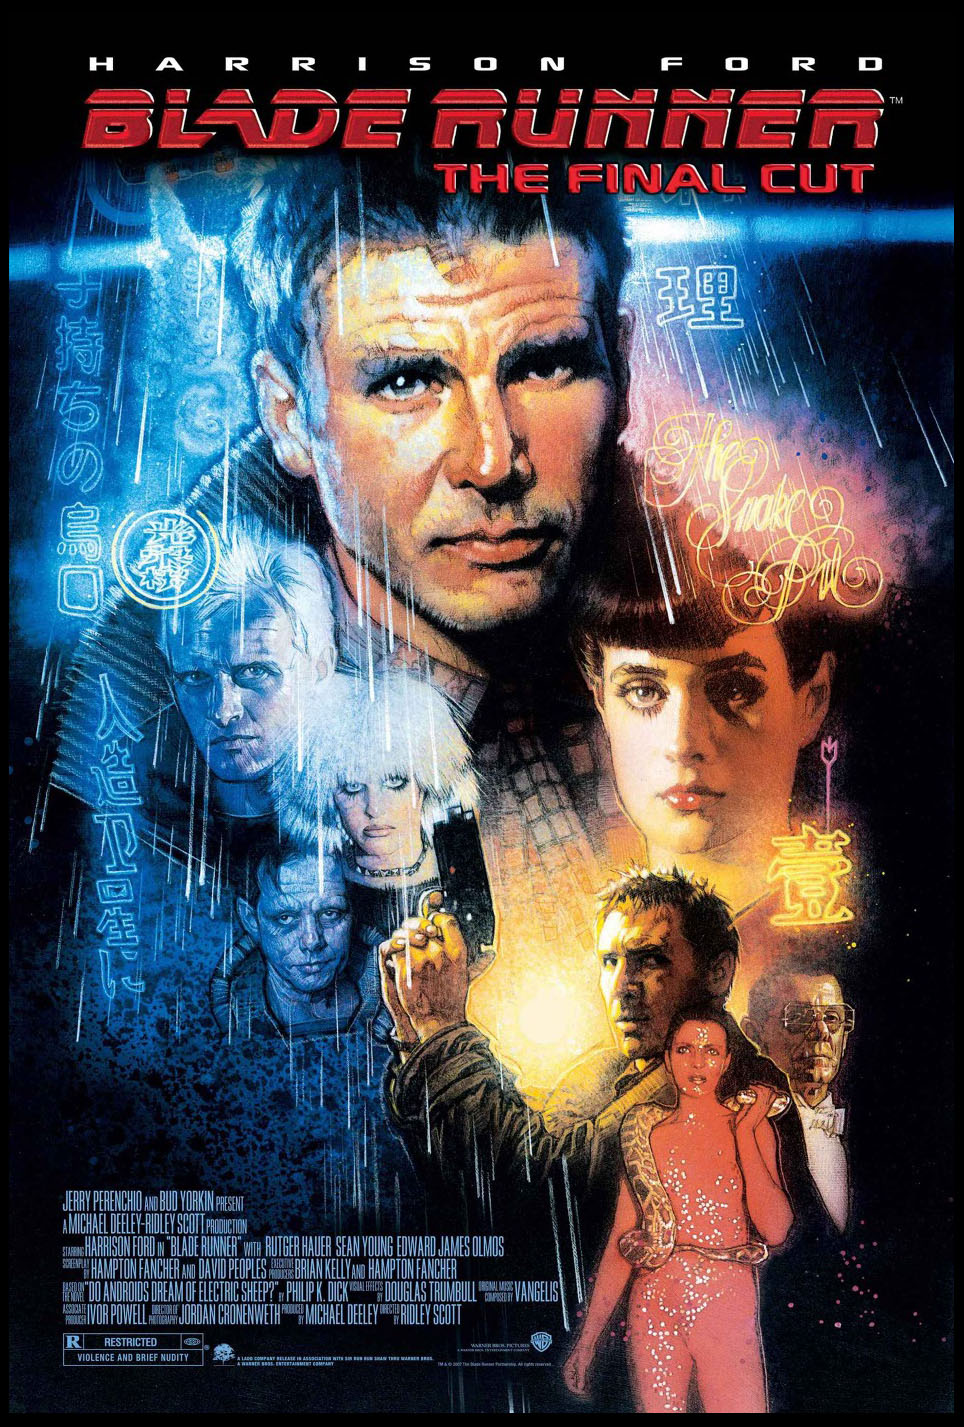 BLADE RUNNER: THE FINAL CUT (Bladerunner) @ FilmPosters.com